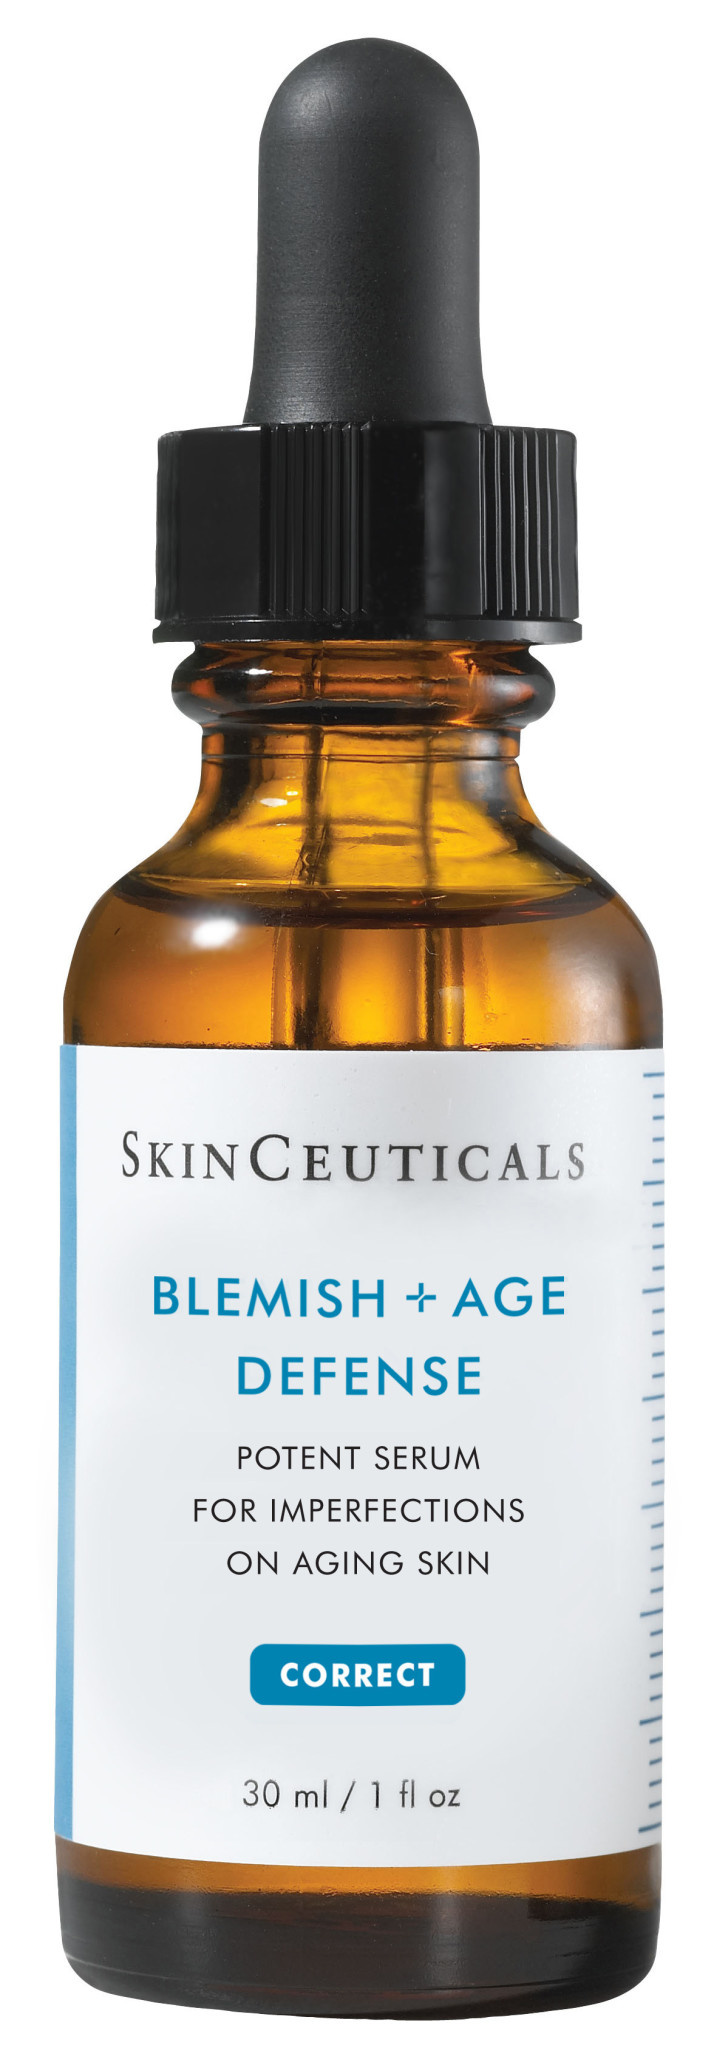 Blemish + Age Defense 30ml-1